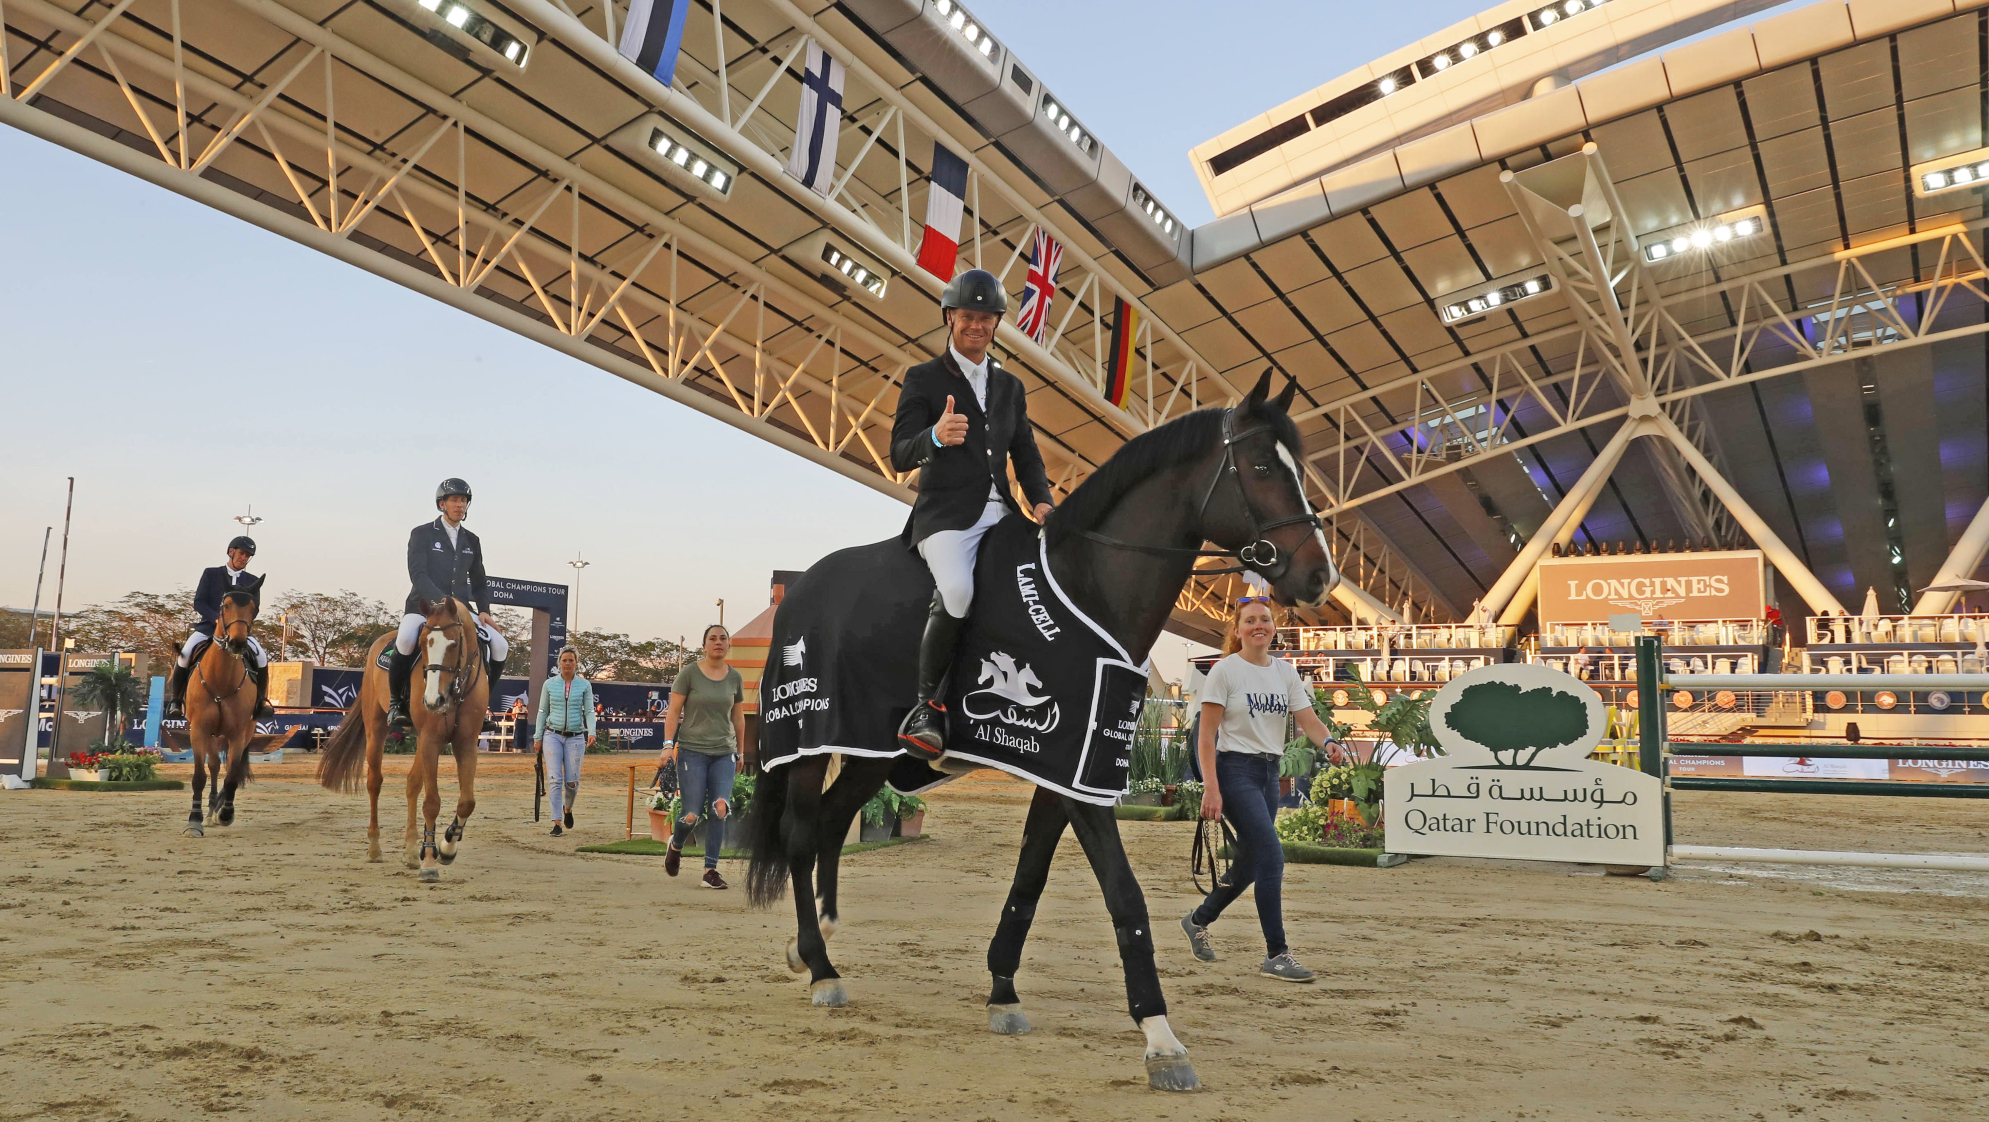 Guery gallops to the win in thrilling speed class at LGCT Doha